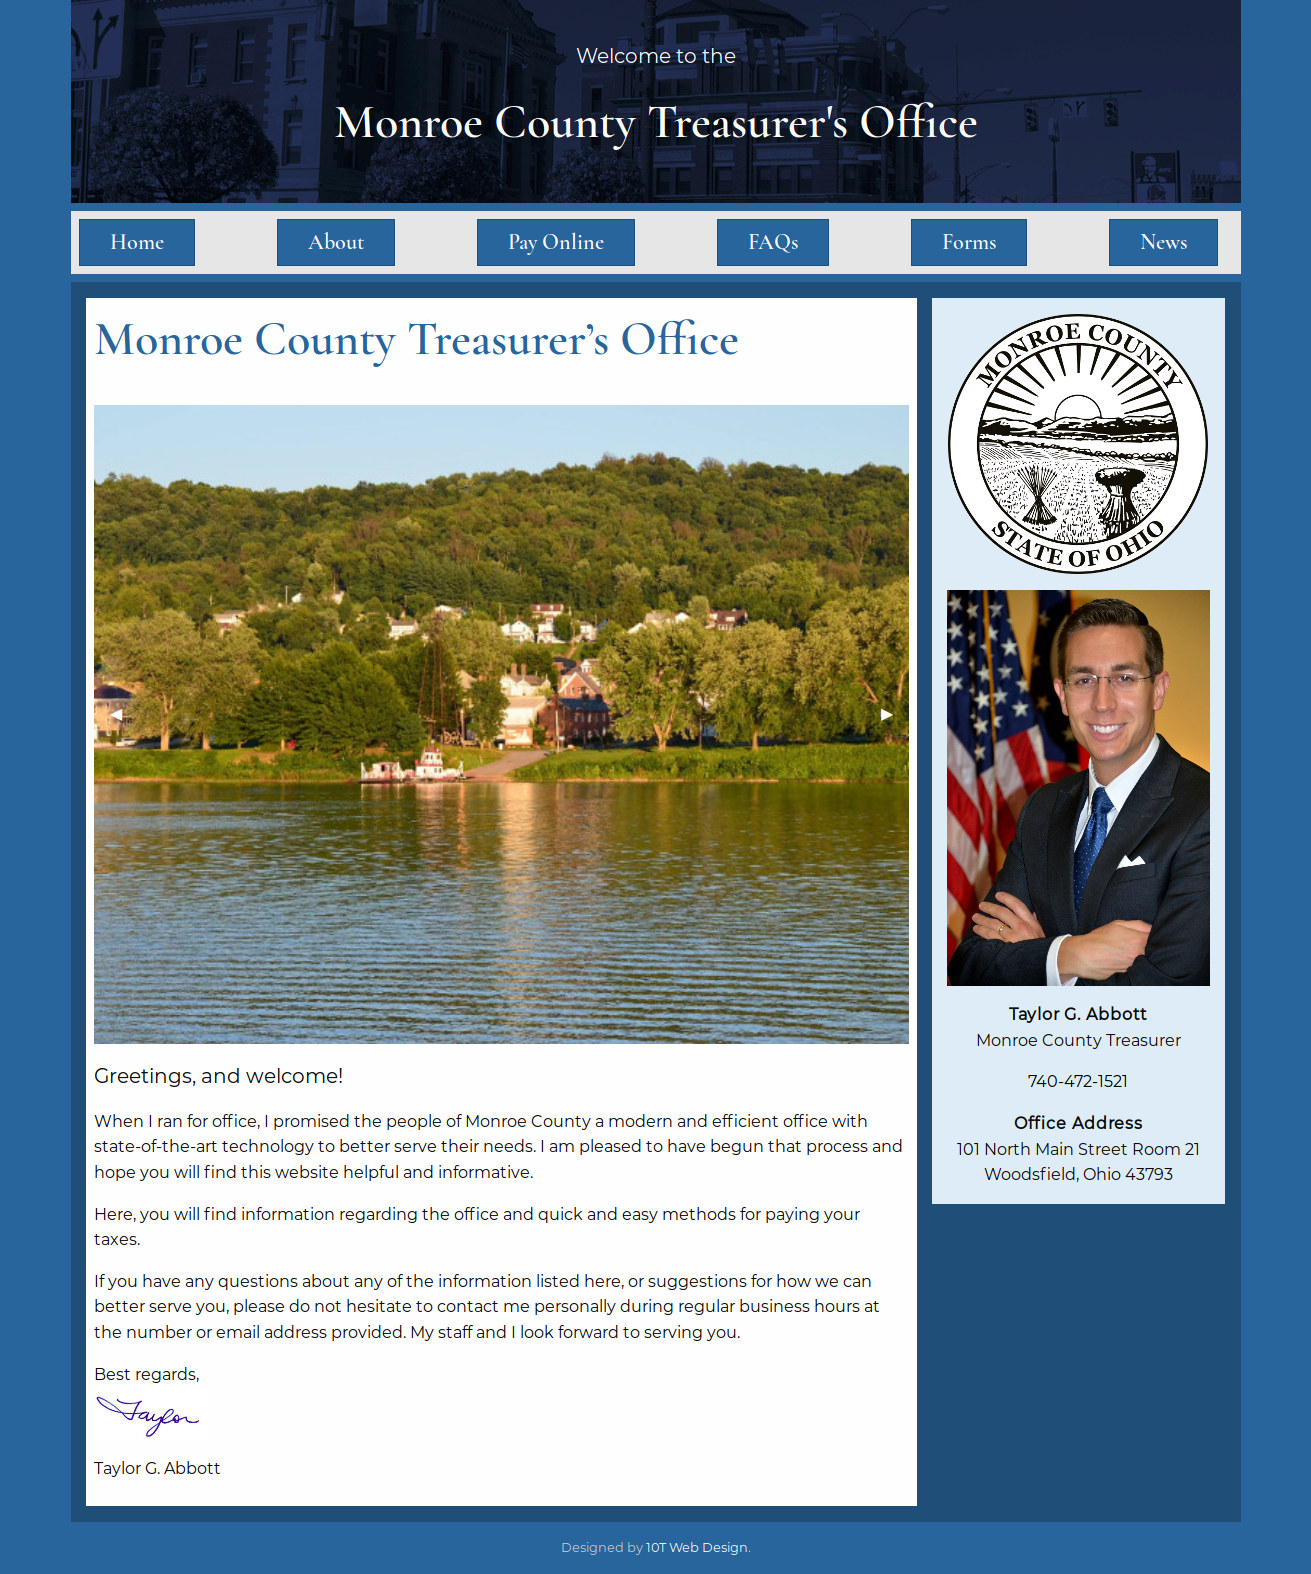 Monroe County Treasurer